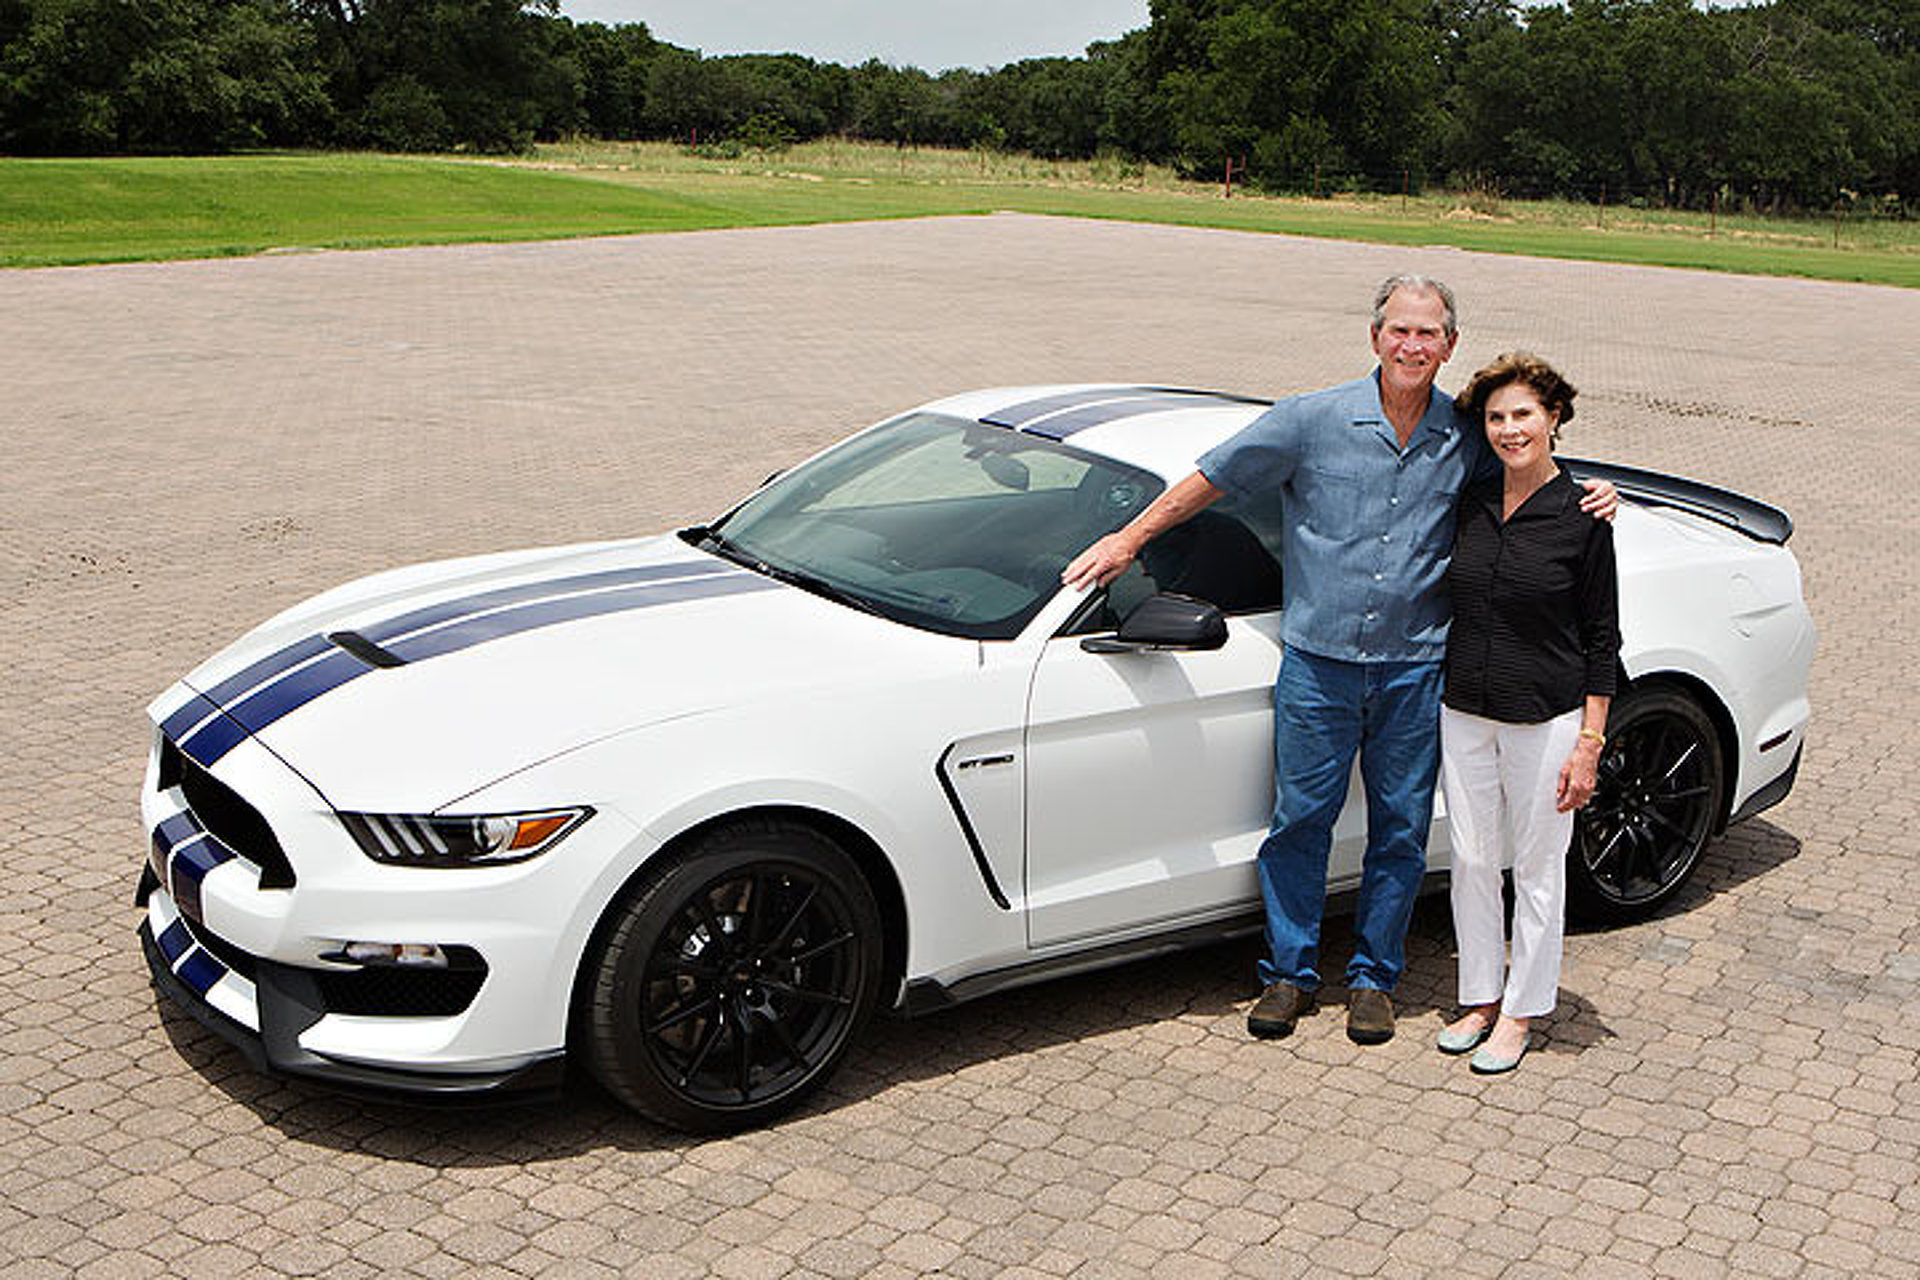 Ford Motor Company Linkedin >> Jay Leno Will Auction Off a Shelby GT350 Signed by George W. Bush